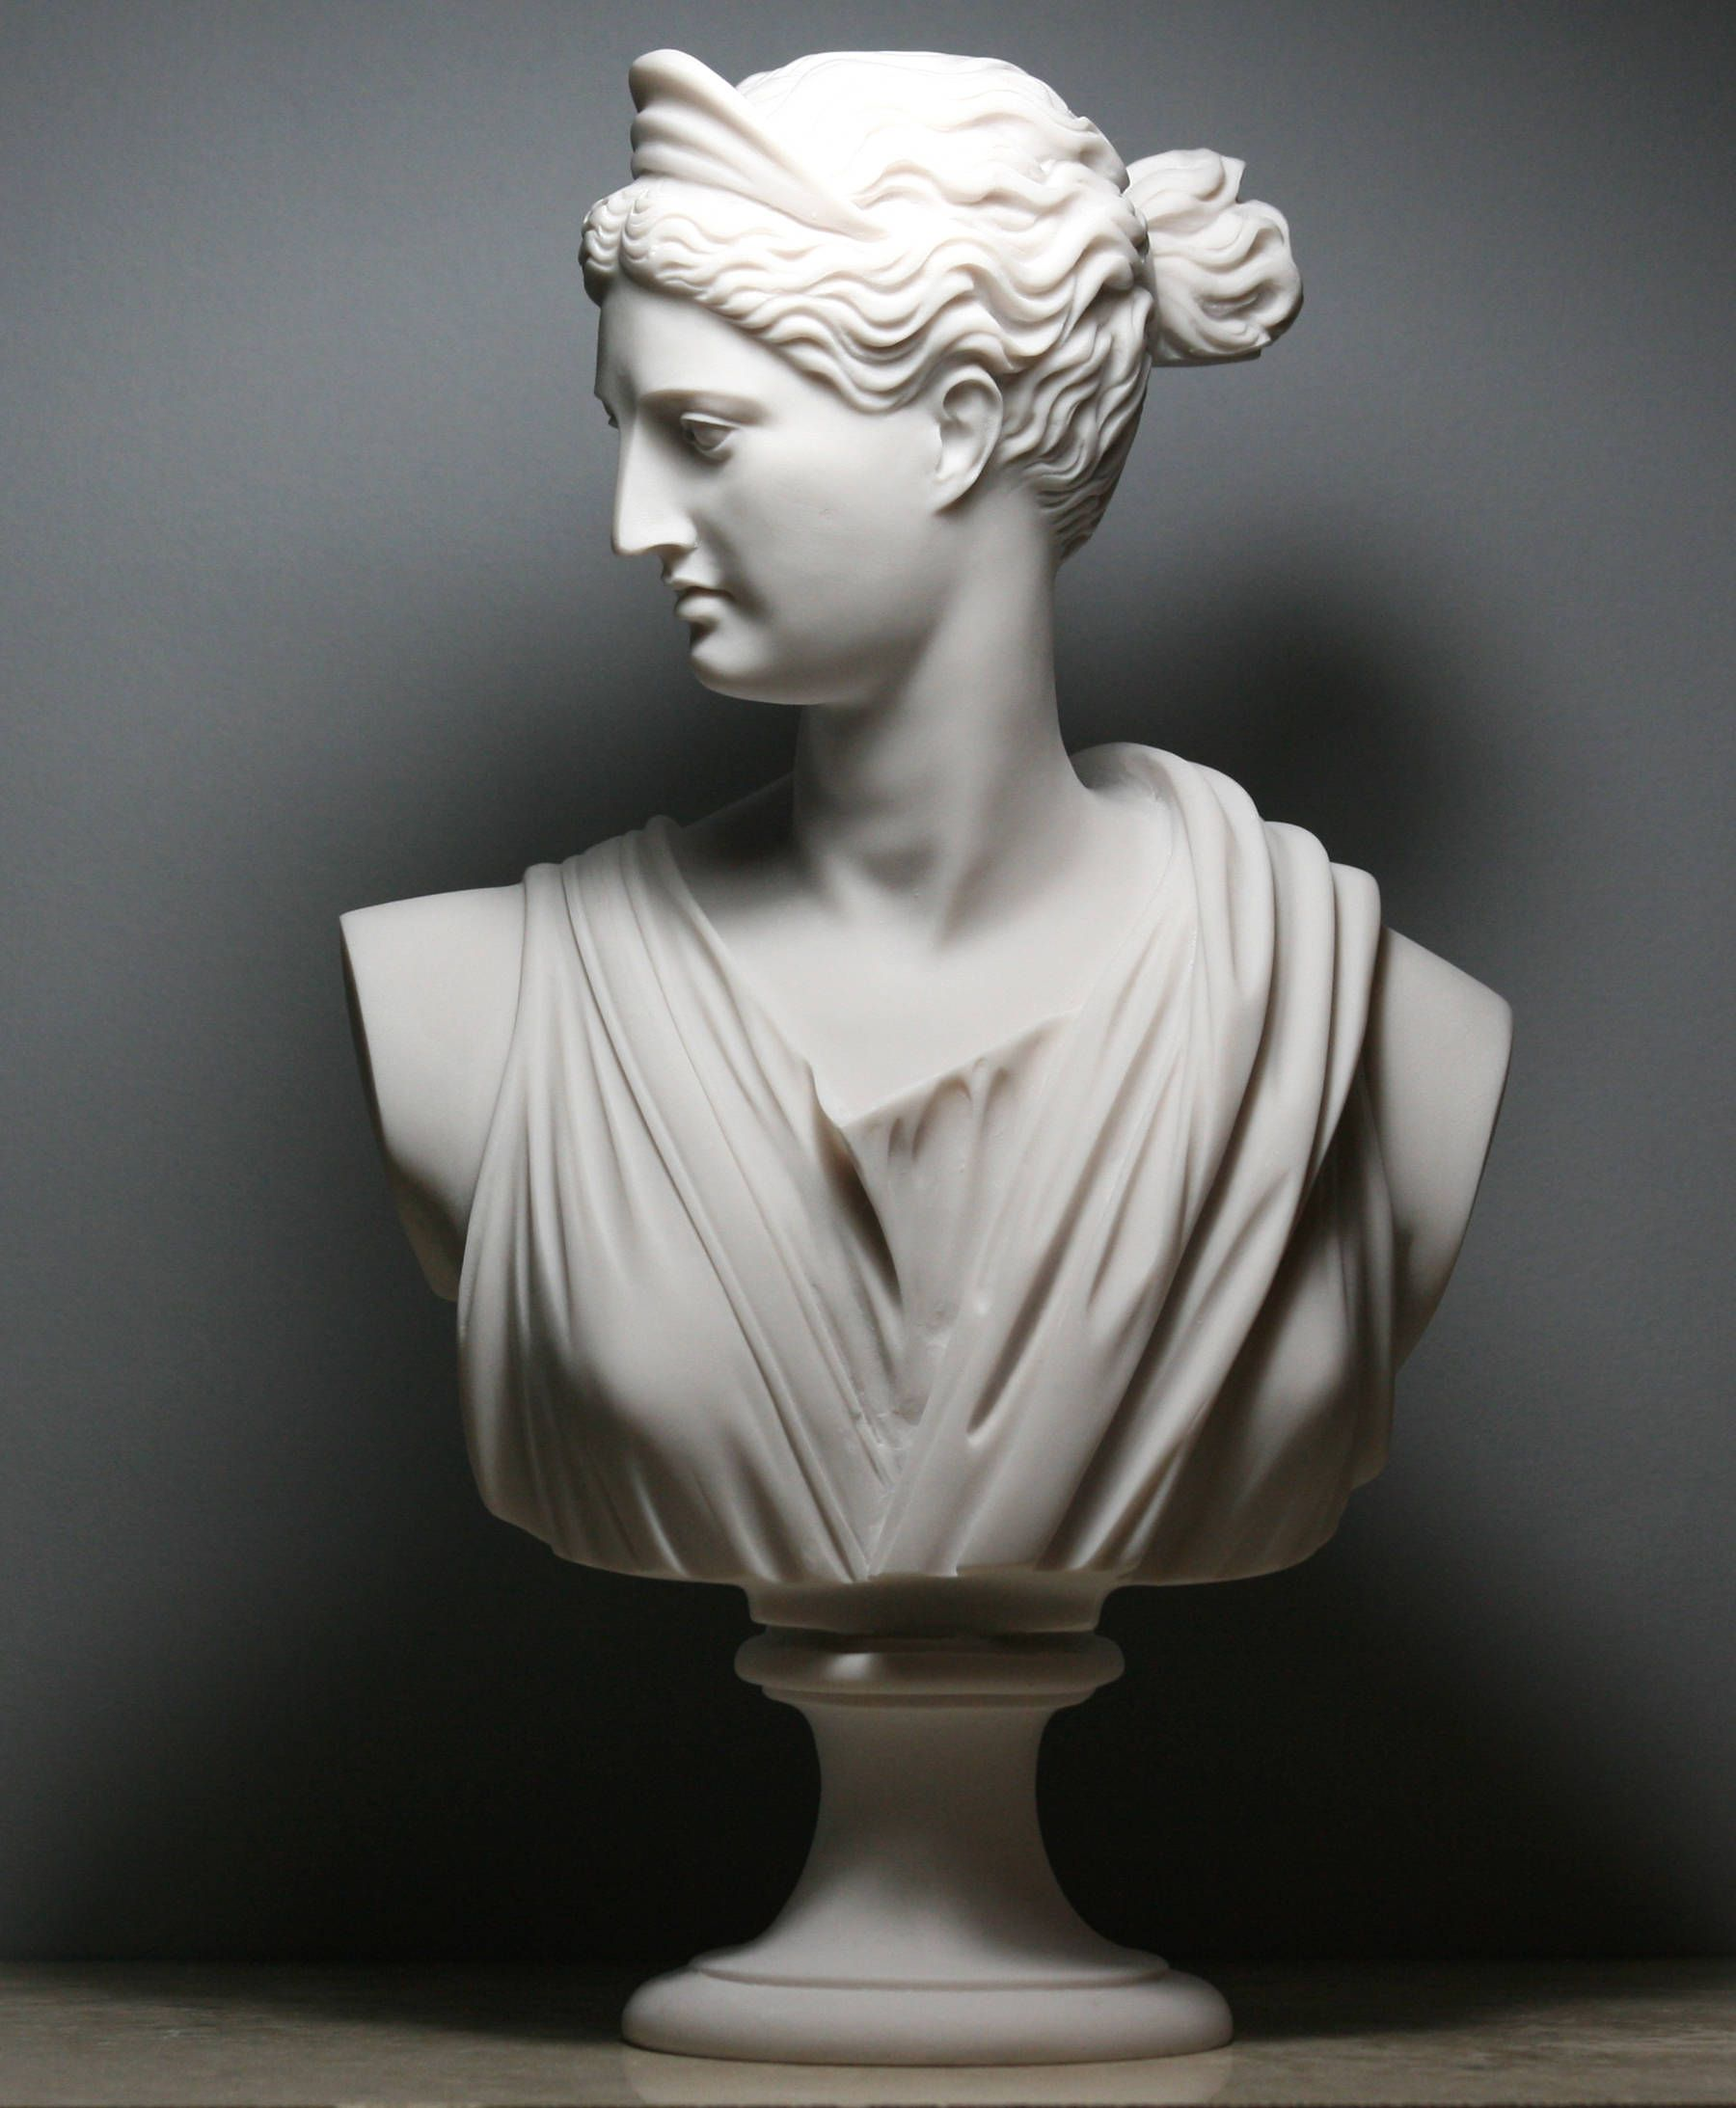 Artemis Diana Bust Head Greek Roman Goddess Cast Marble Statue Sculpture 11 8in 30 Cm Goddess Statue Statue Marble Statues